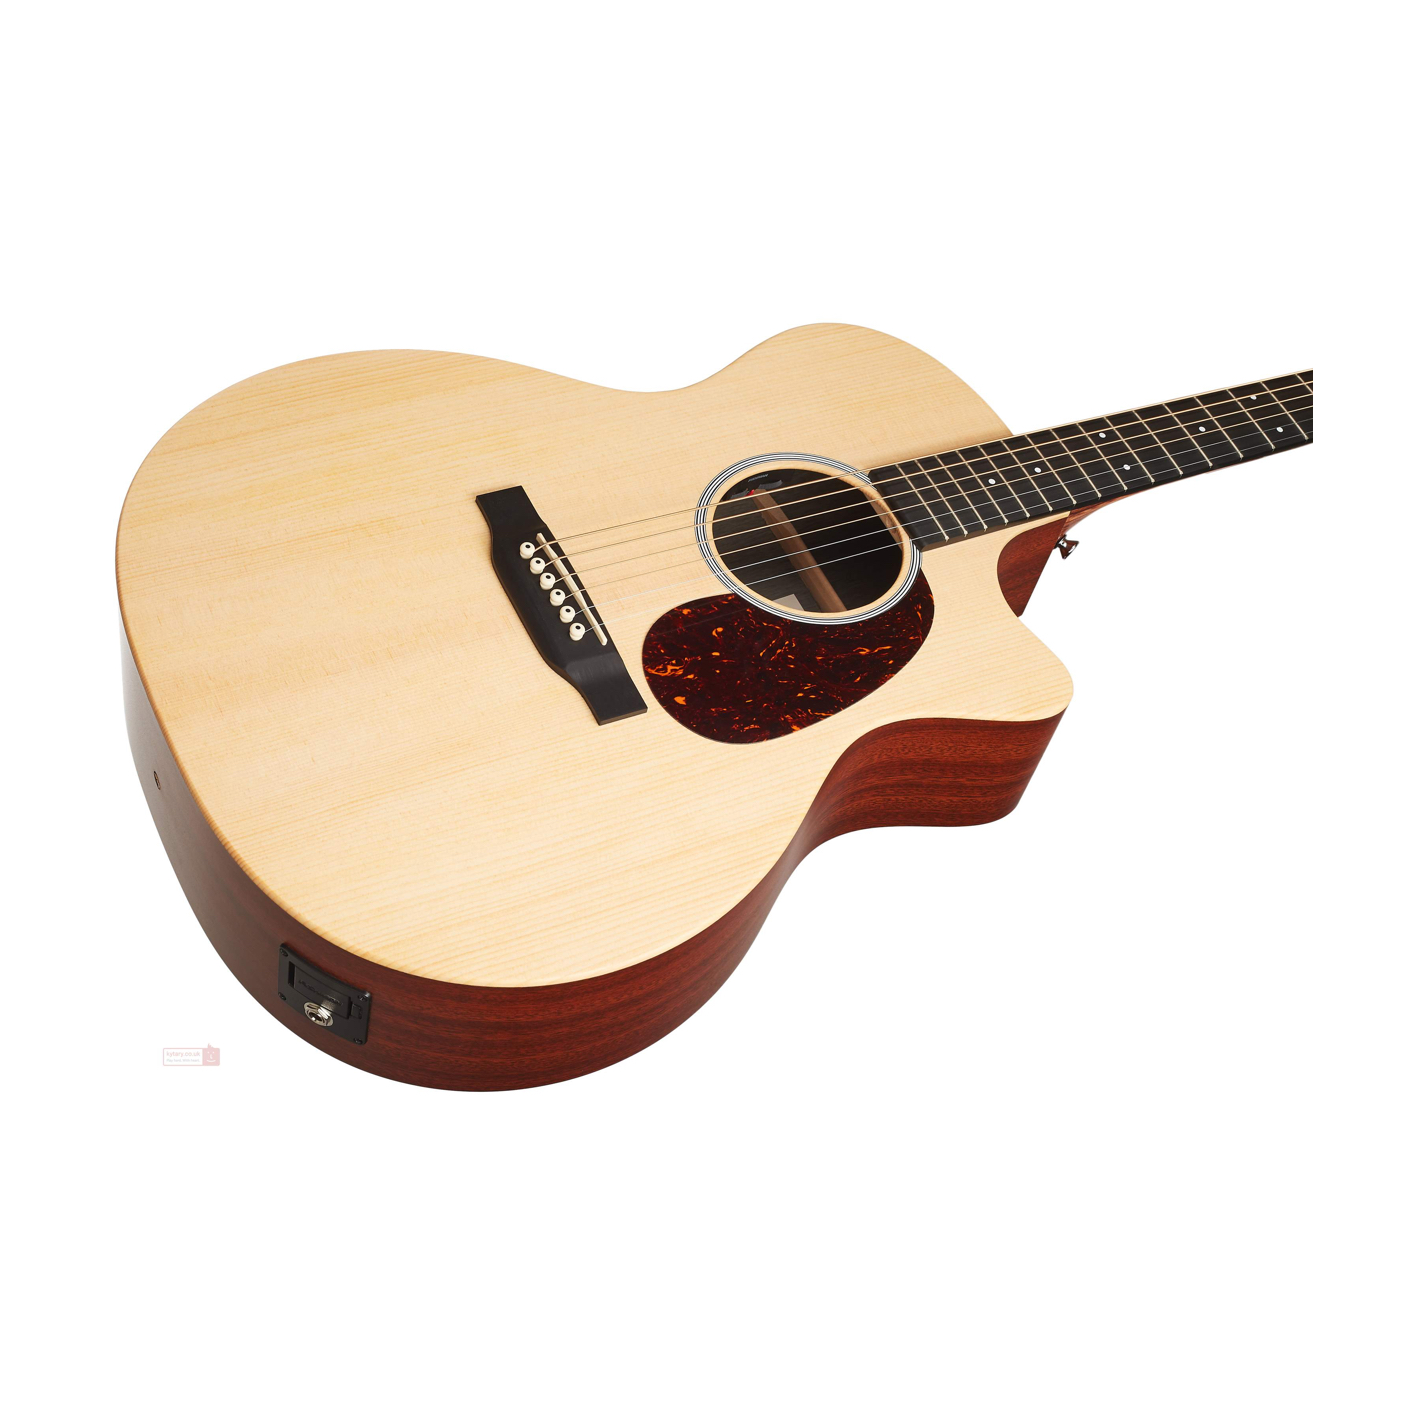 Martin GPCX1AE X Series Electro Acoustic